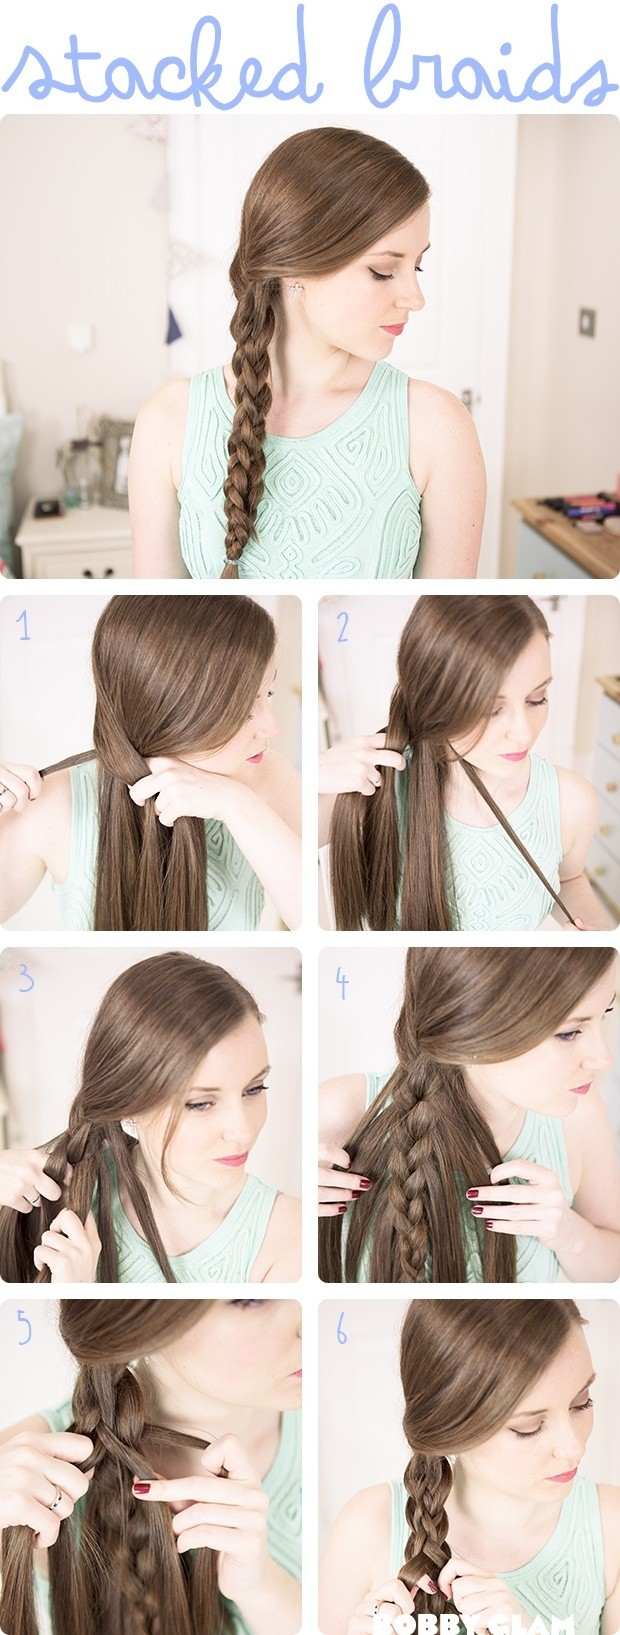 Stacked Braided Hairstyle Tutorial